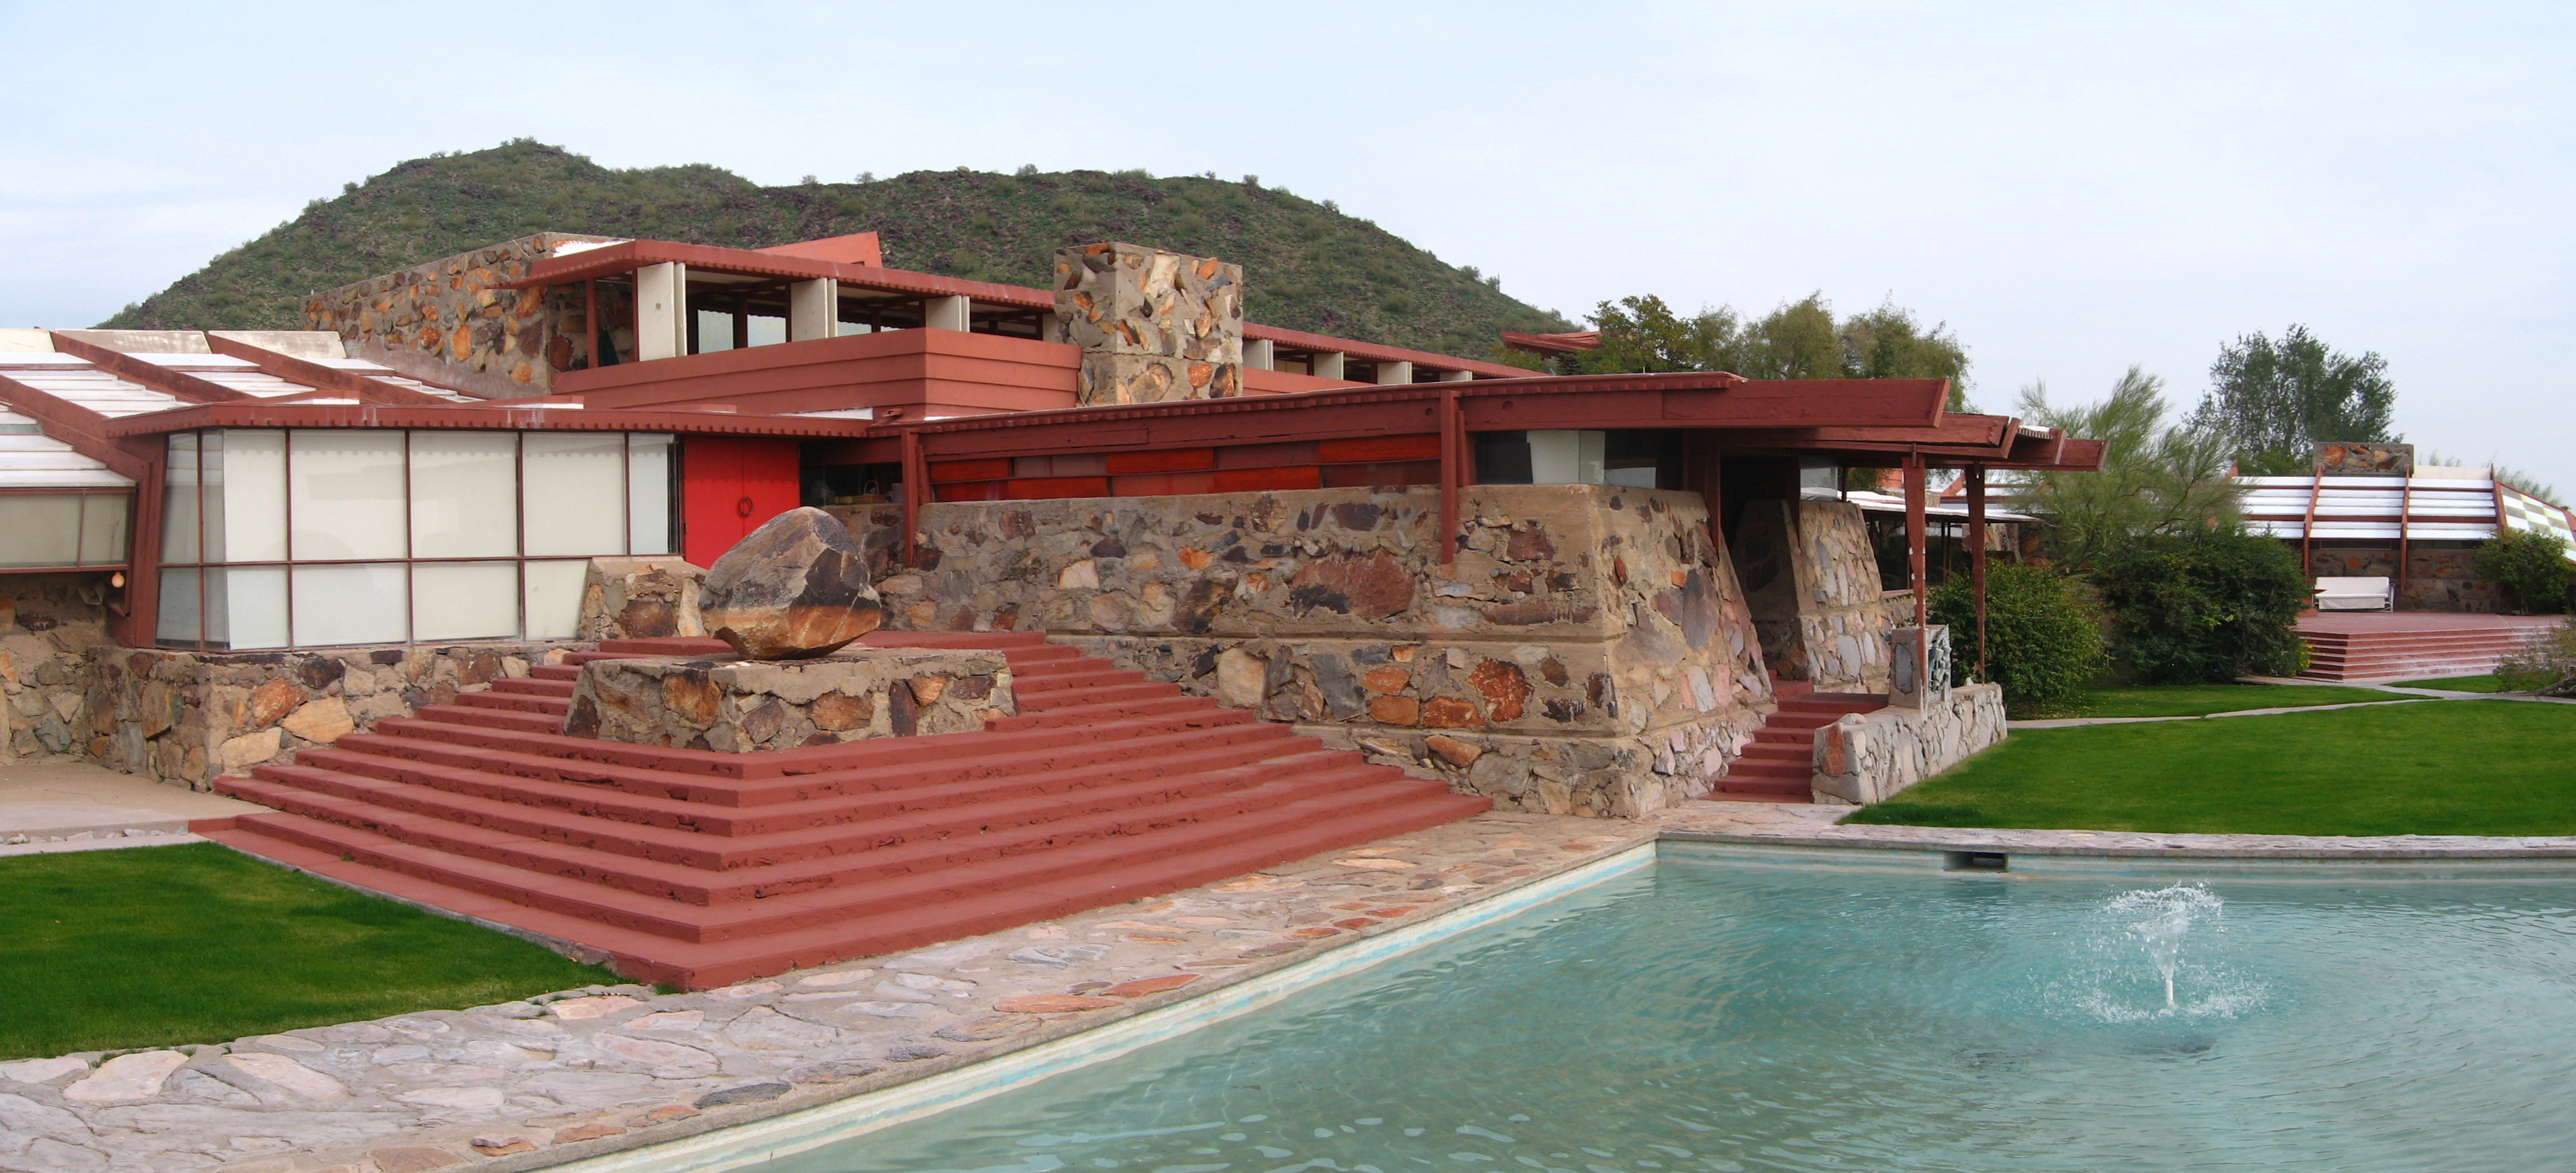 Wright at Home: An Inside Look at Frank Lloyd Wright's